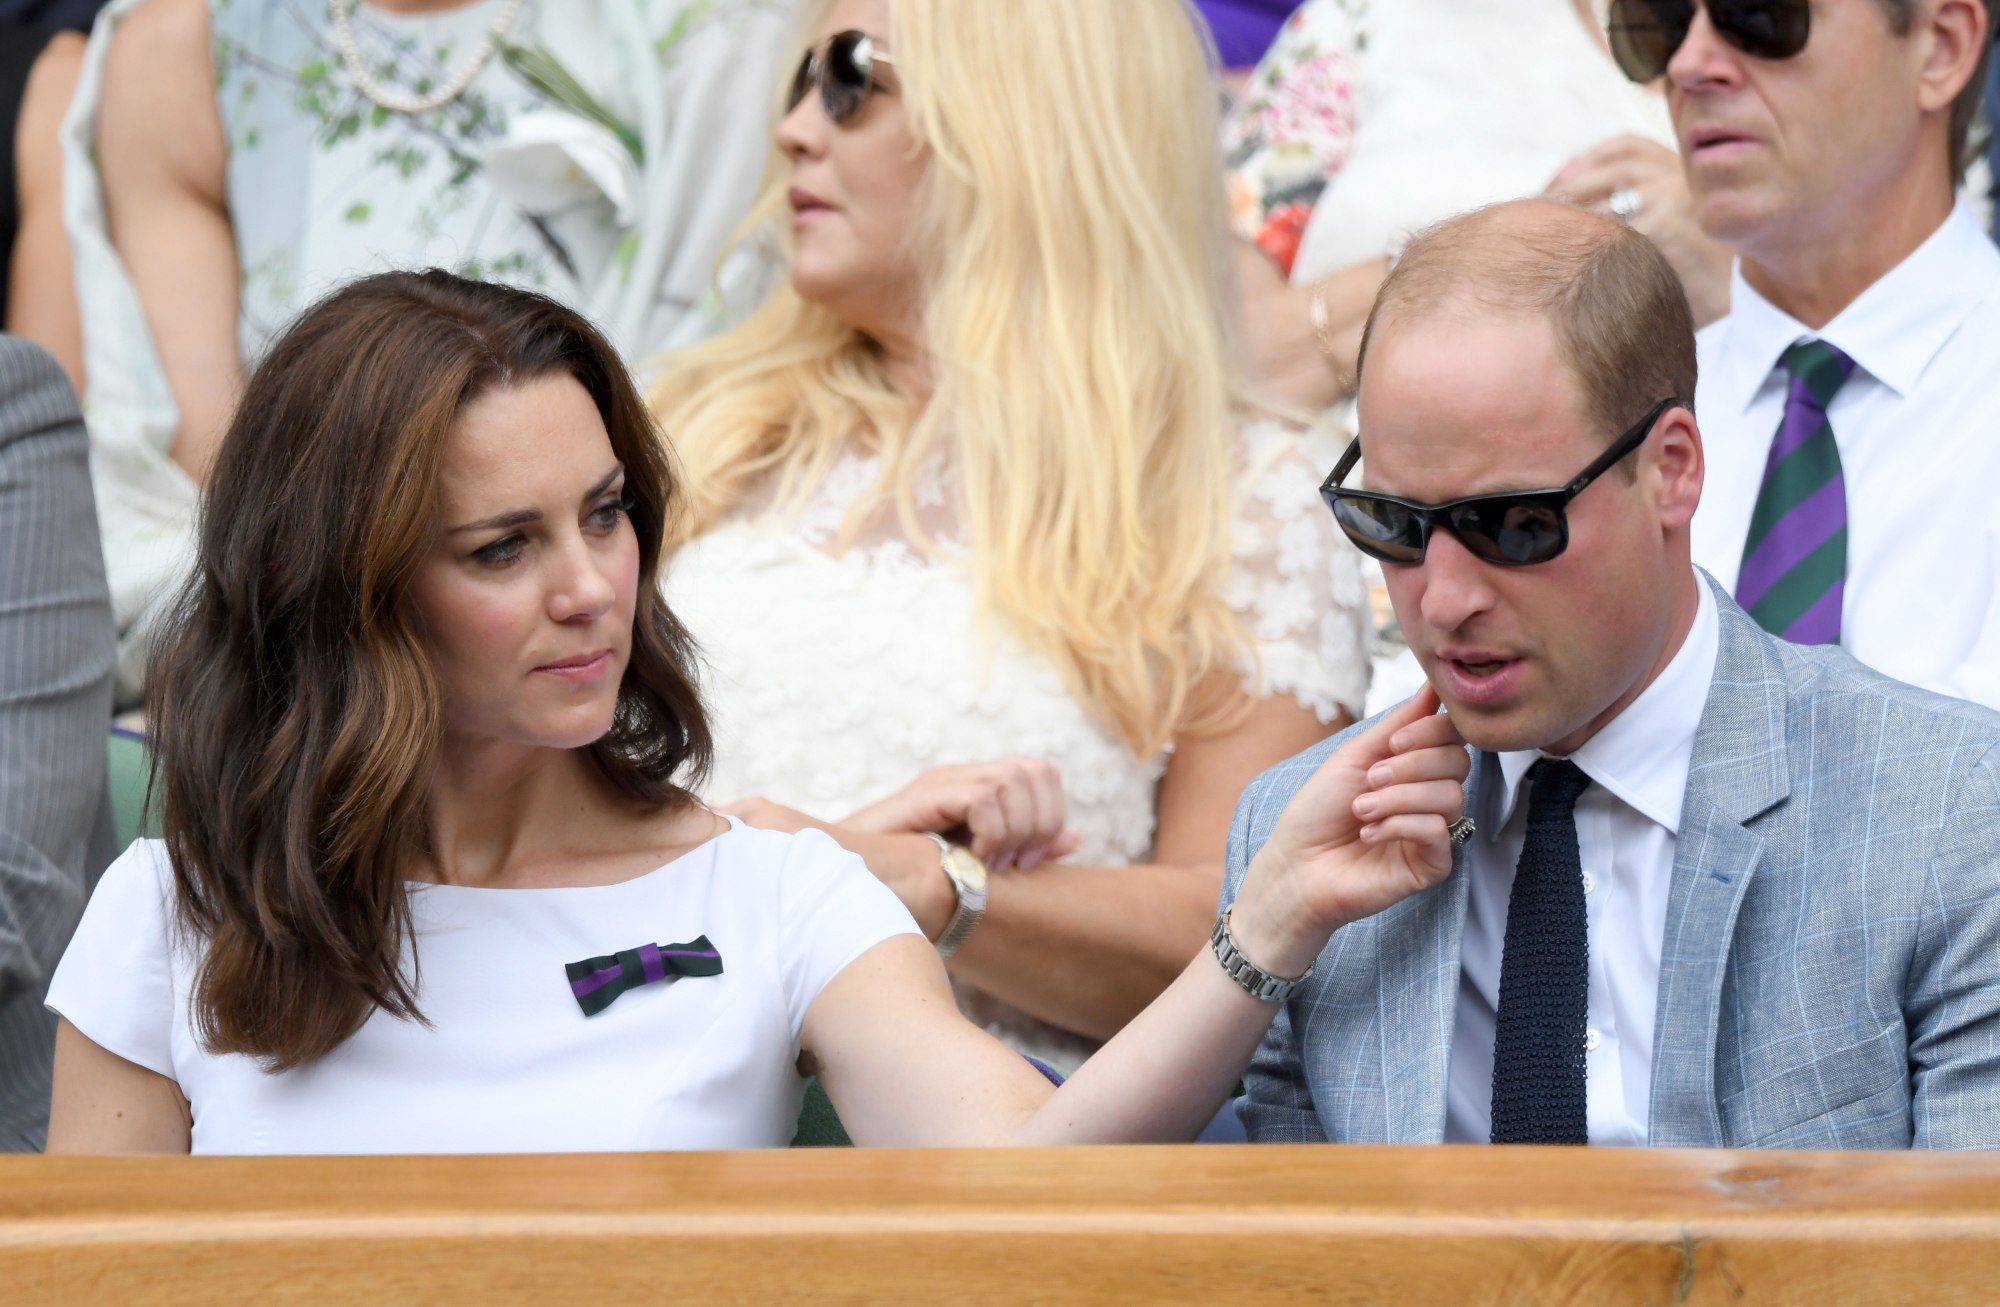 Prince William and Princess Kate carved out some together time on Sunday Photo (C) KARWAI TNAG, WIREIMAGE